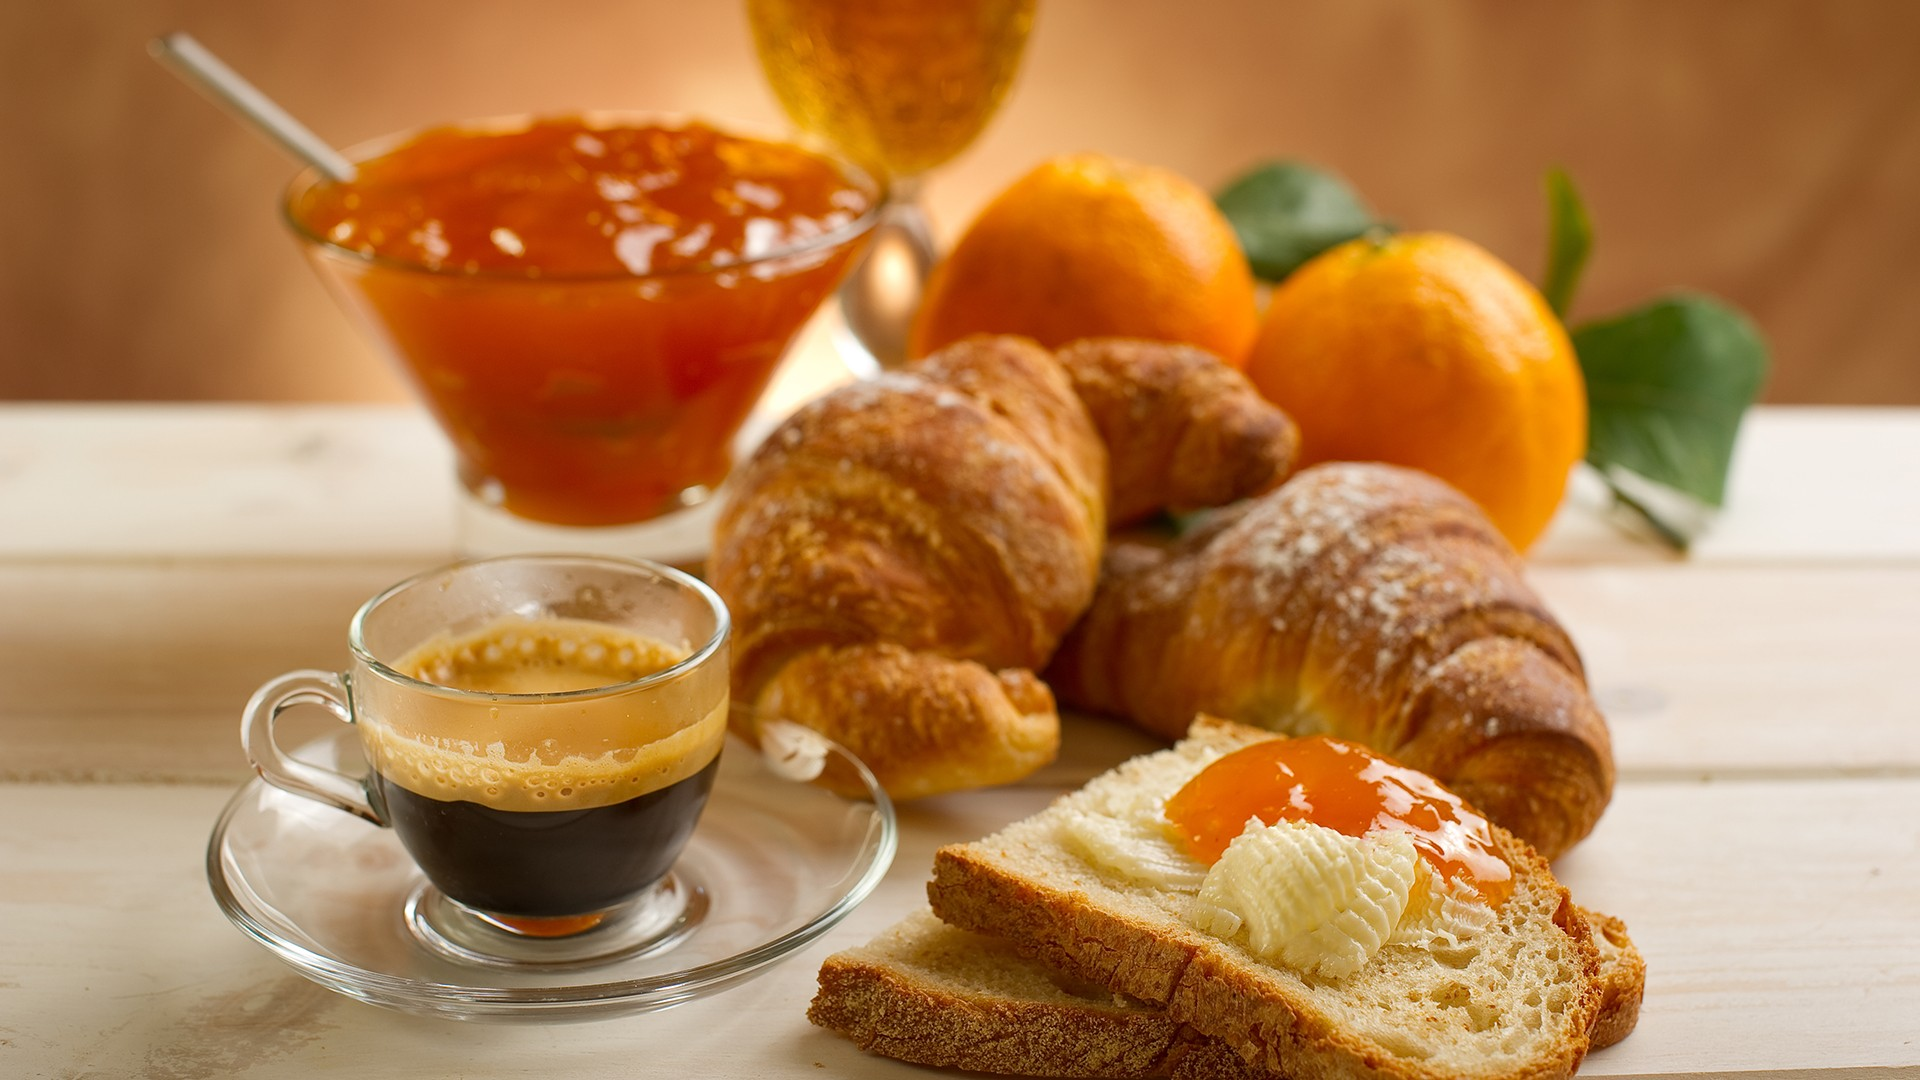 sandwiches-with-apricot-jam-and-coffee